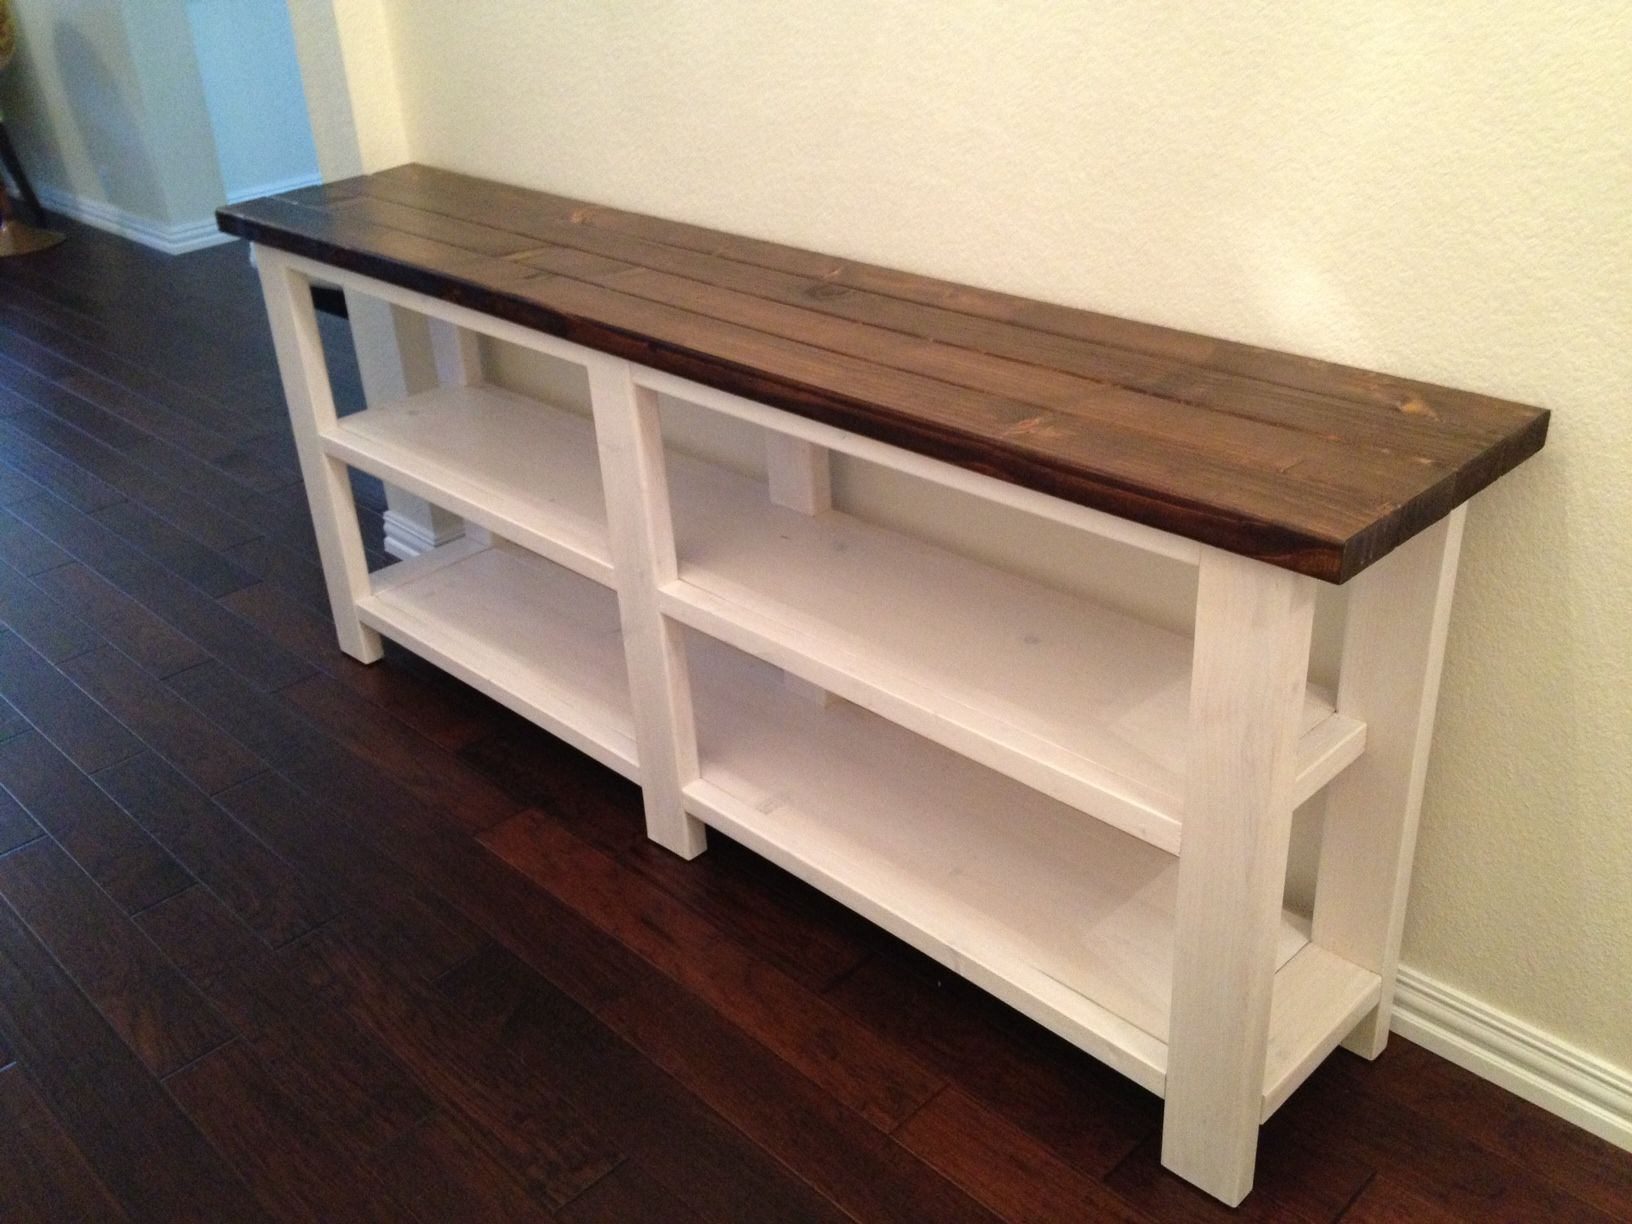 Taylors Console  Build this wood console  Free plans from Ana White com. Rustic Chic Console Table